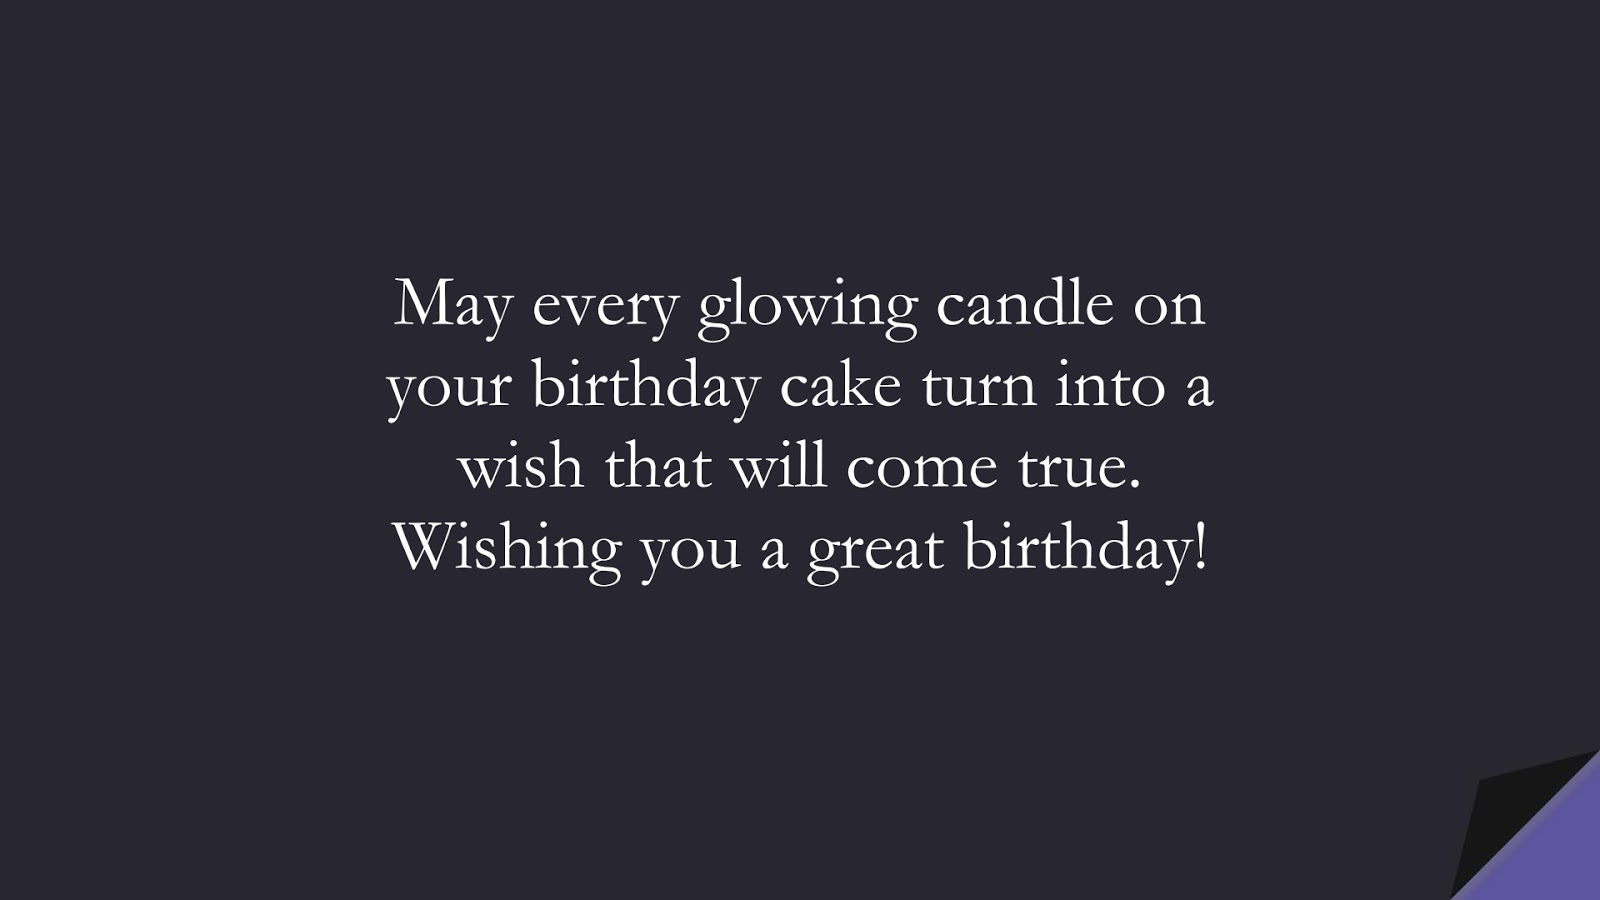 May every glowing candle on your birthday cake turn into a wish that will come true. Wishing you a great birthday!FALSE